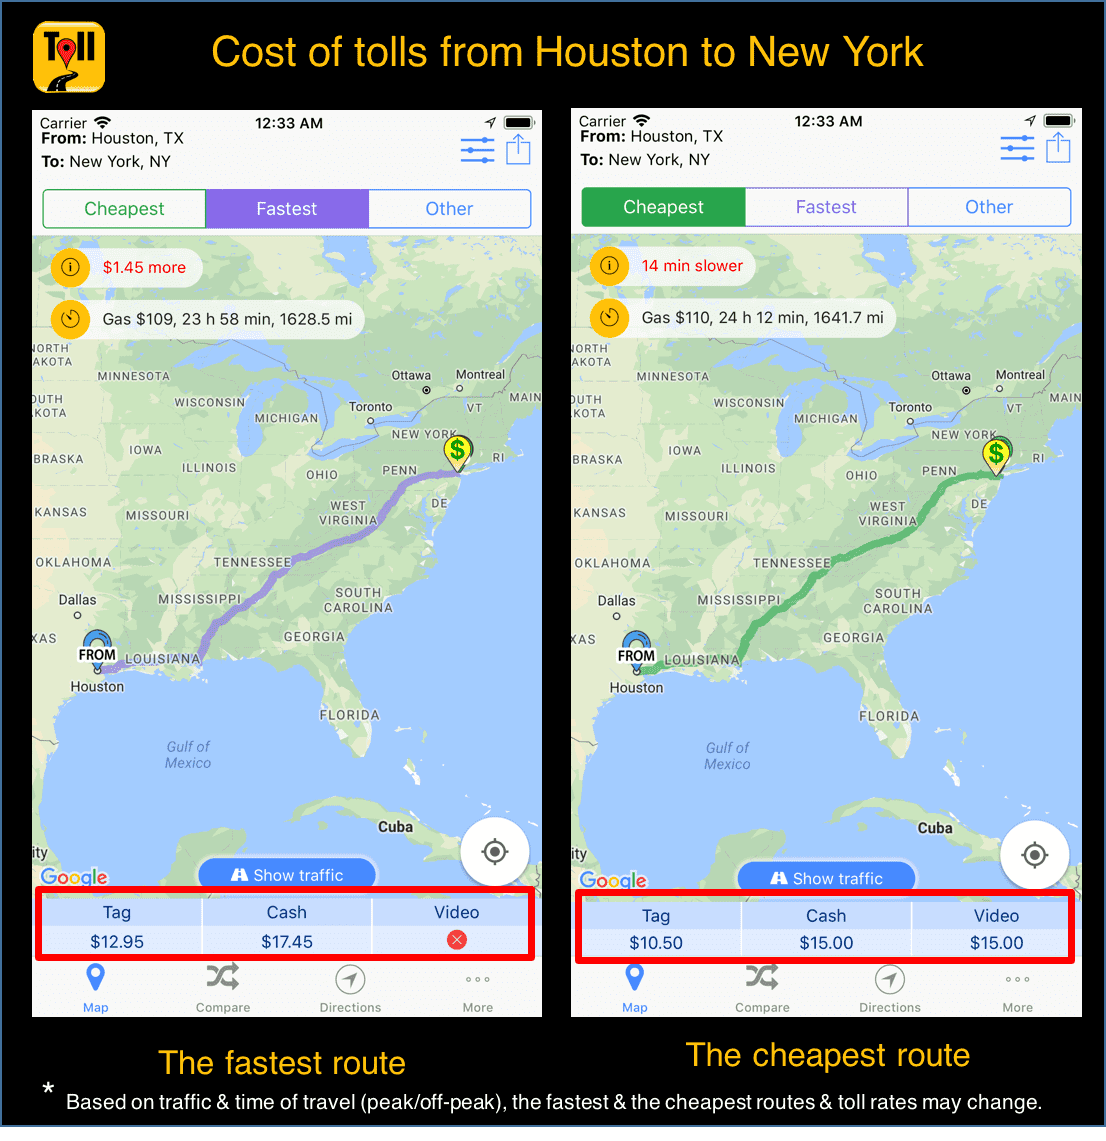 Cost Of Tolls From Houston To New York Use Tollguru Toll Calculator To Find The Fastest Route With Tolls Gas Cost For Your Trip Anywher Toll Road Tolls Trip